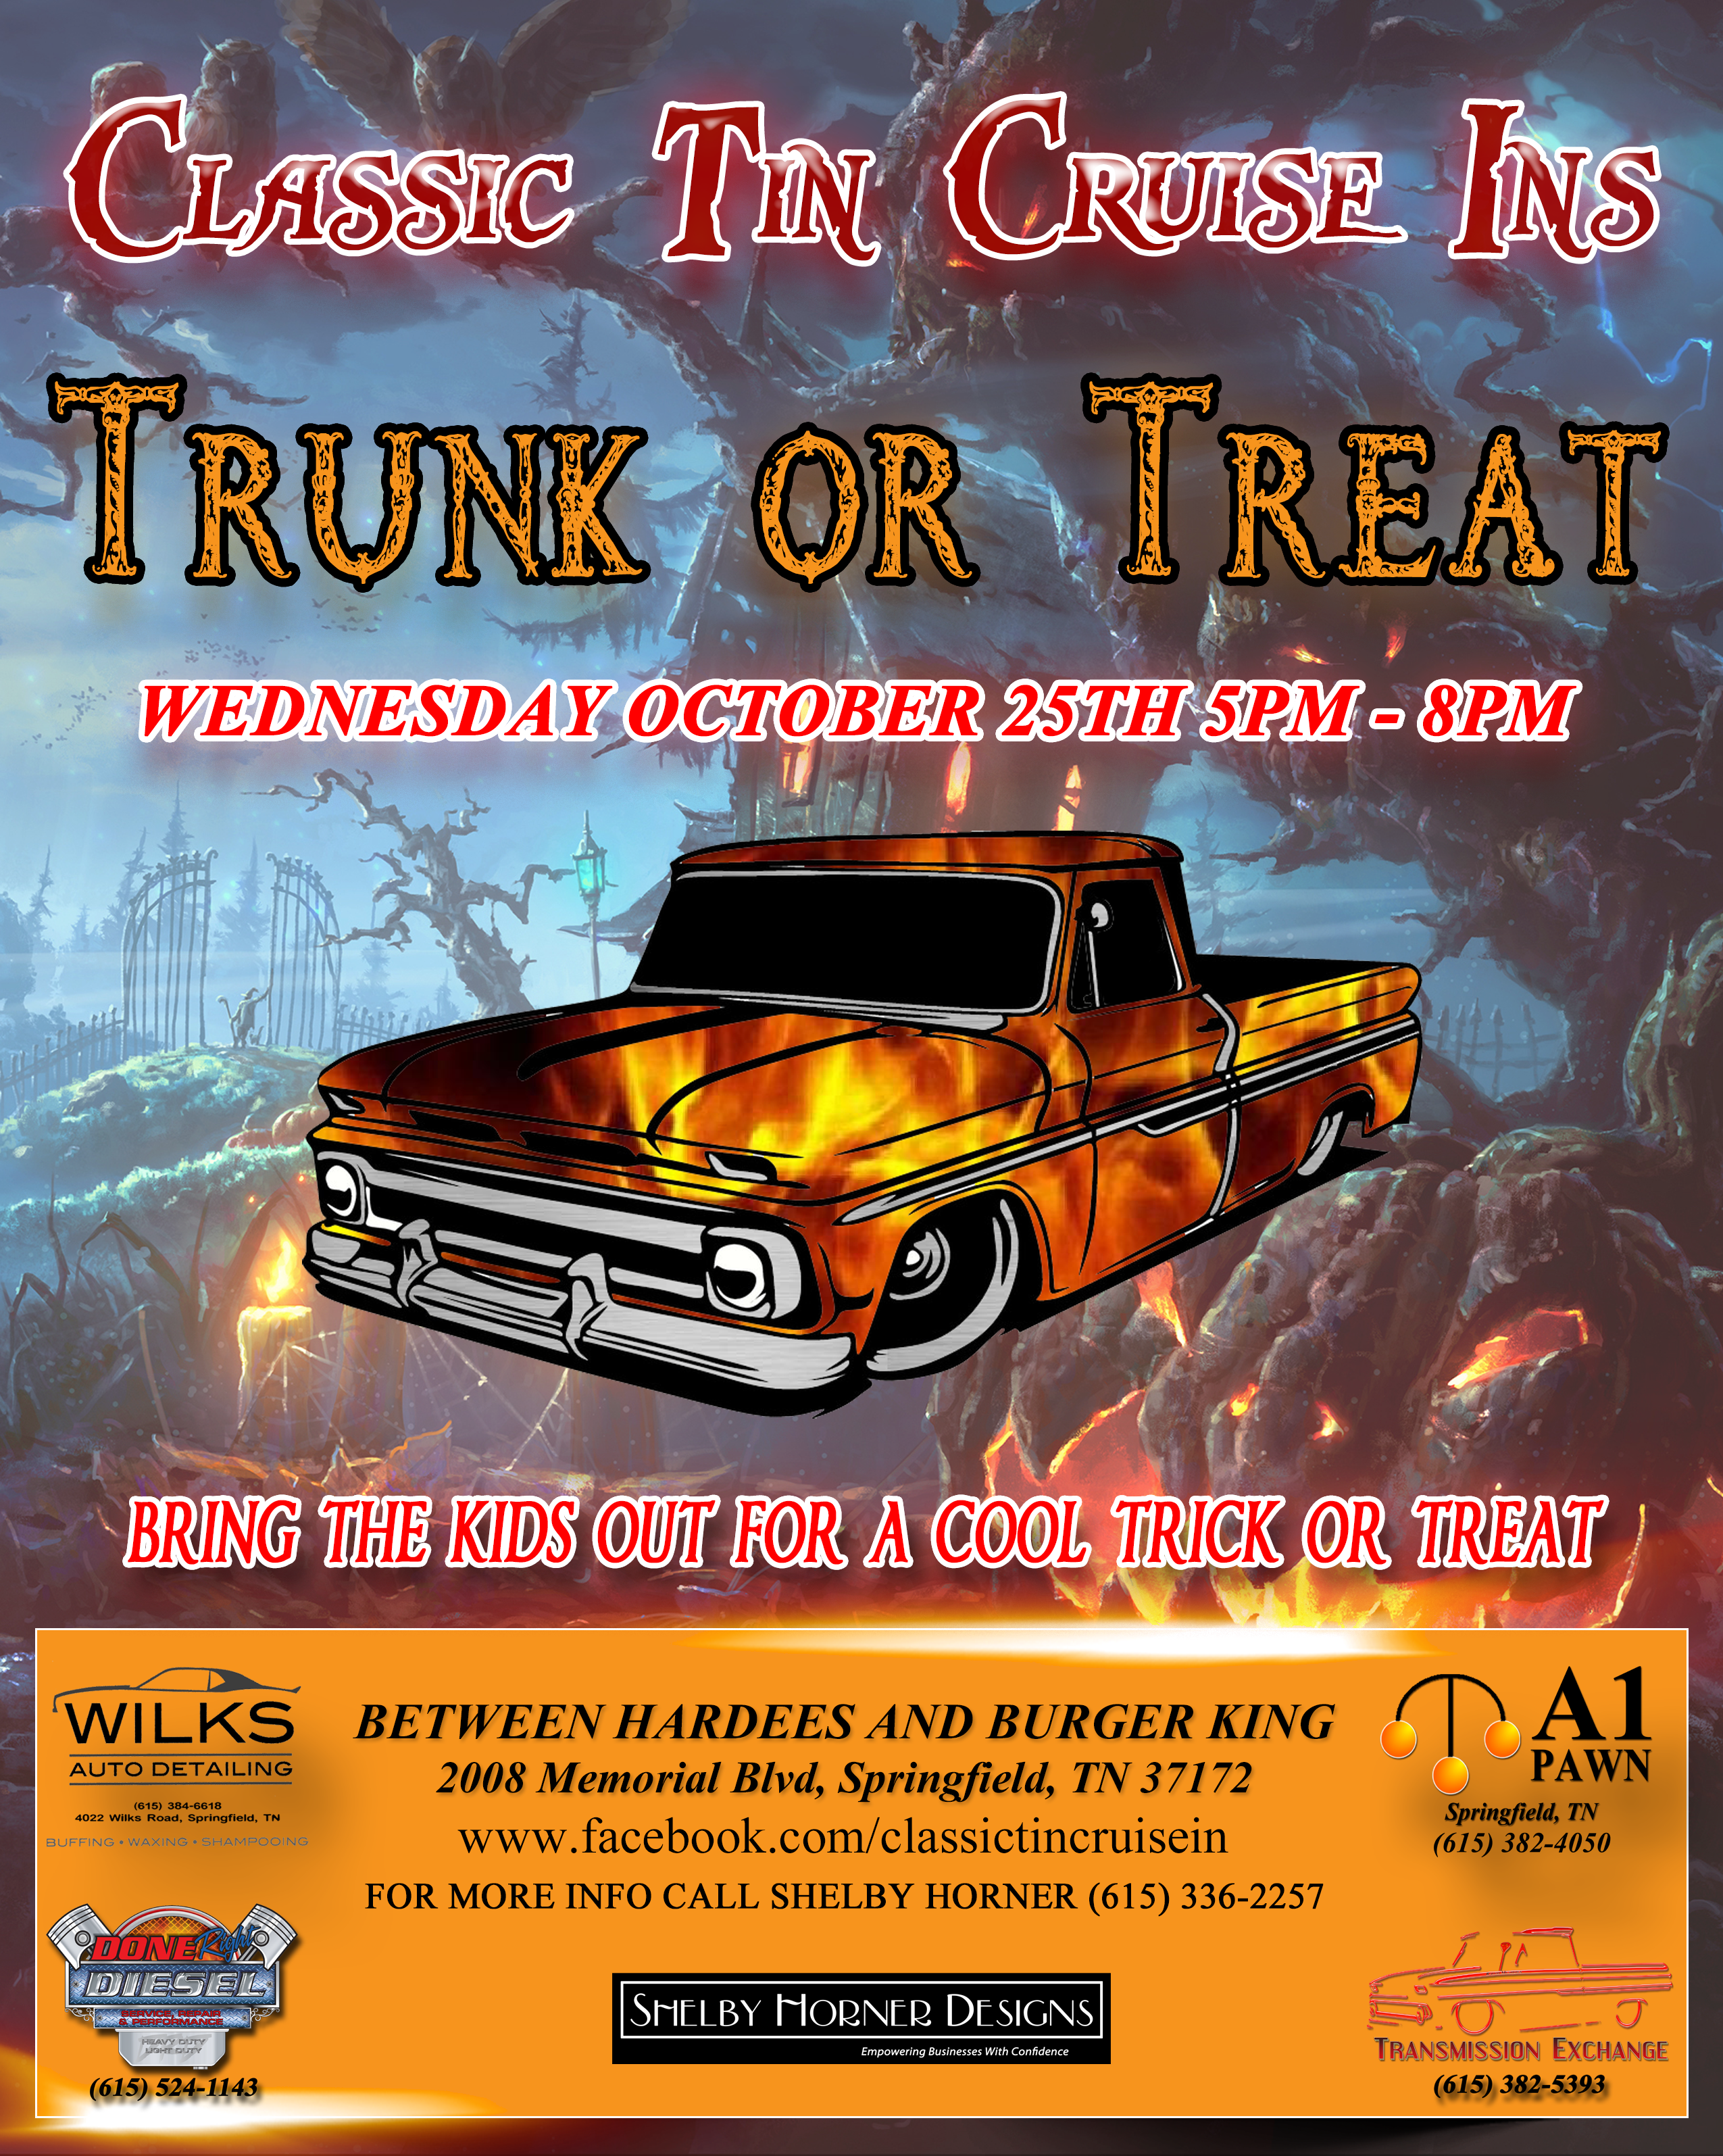 Classic Tin Cruise In Trunk or Treat 2017